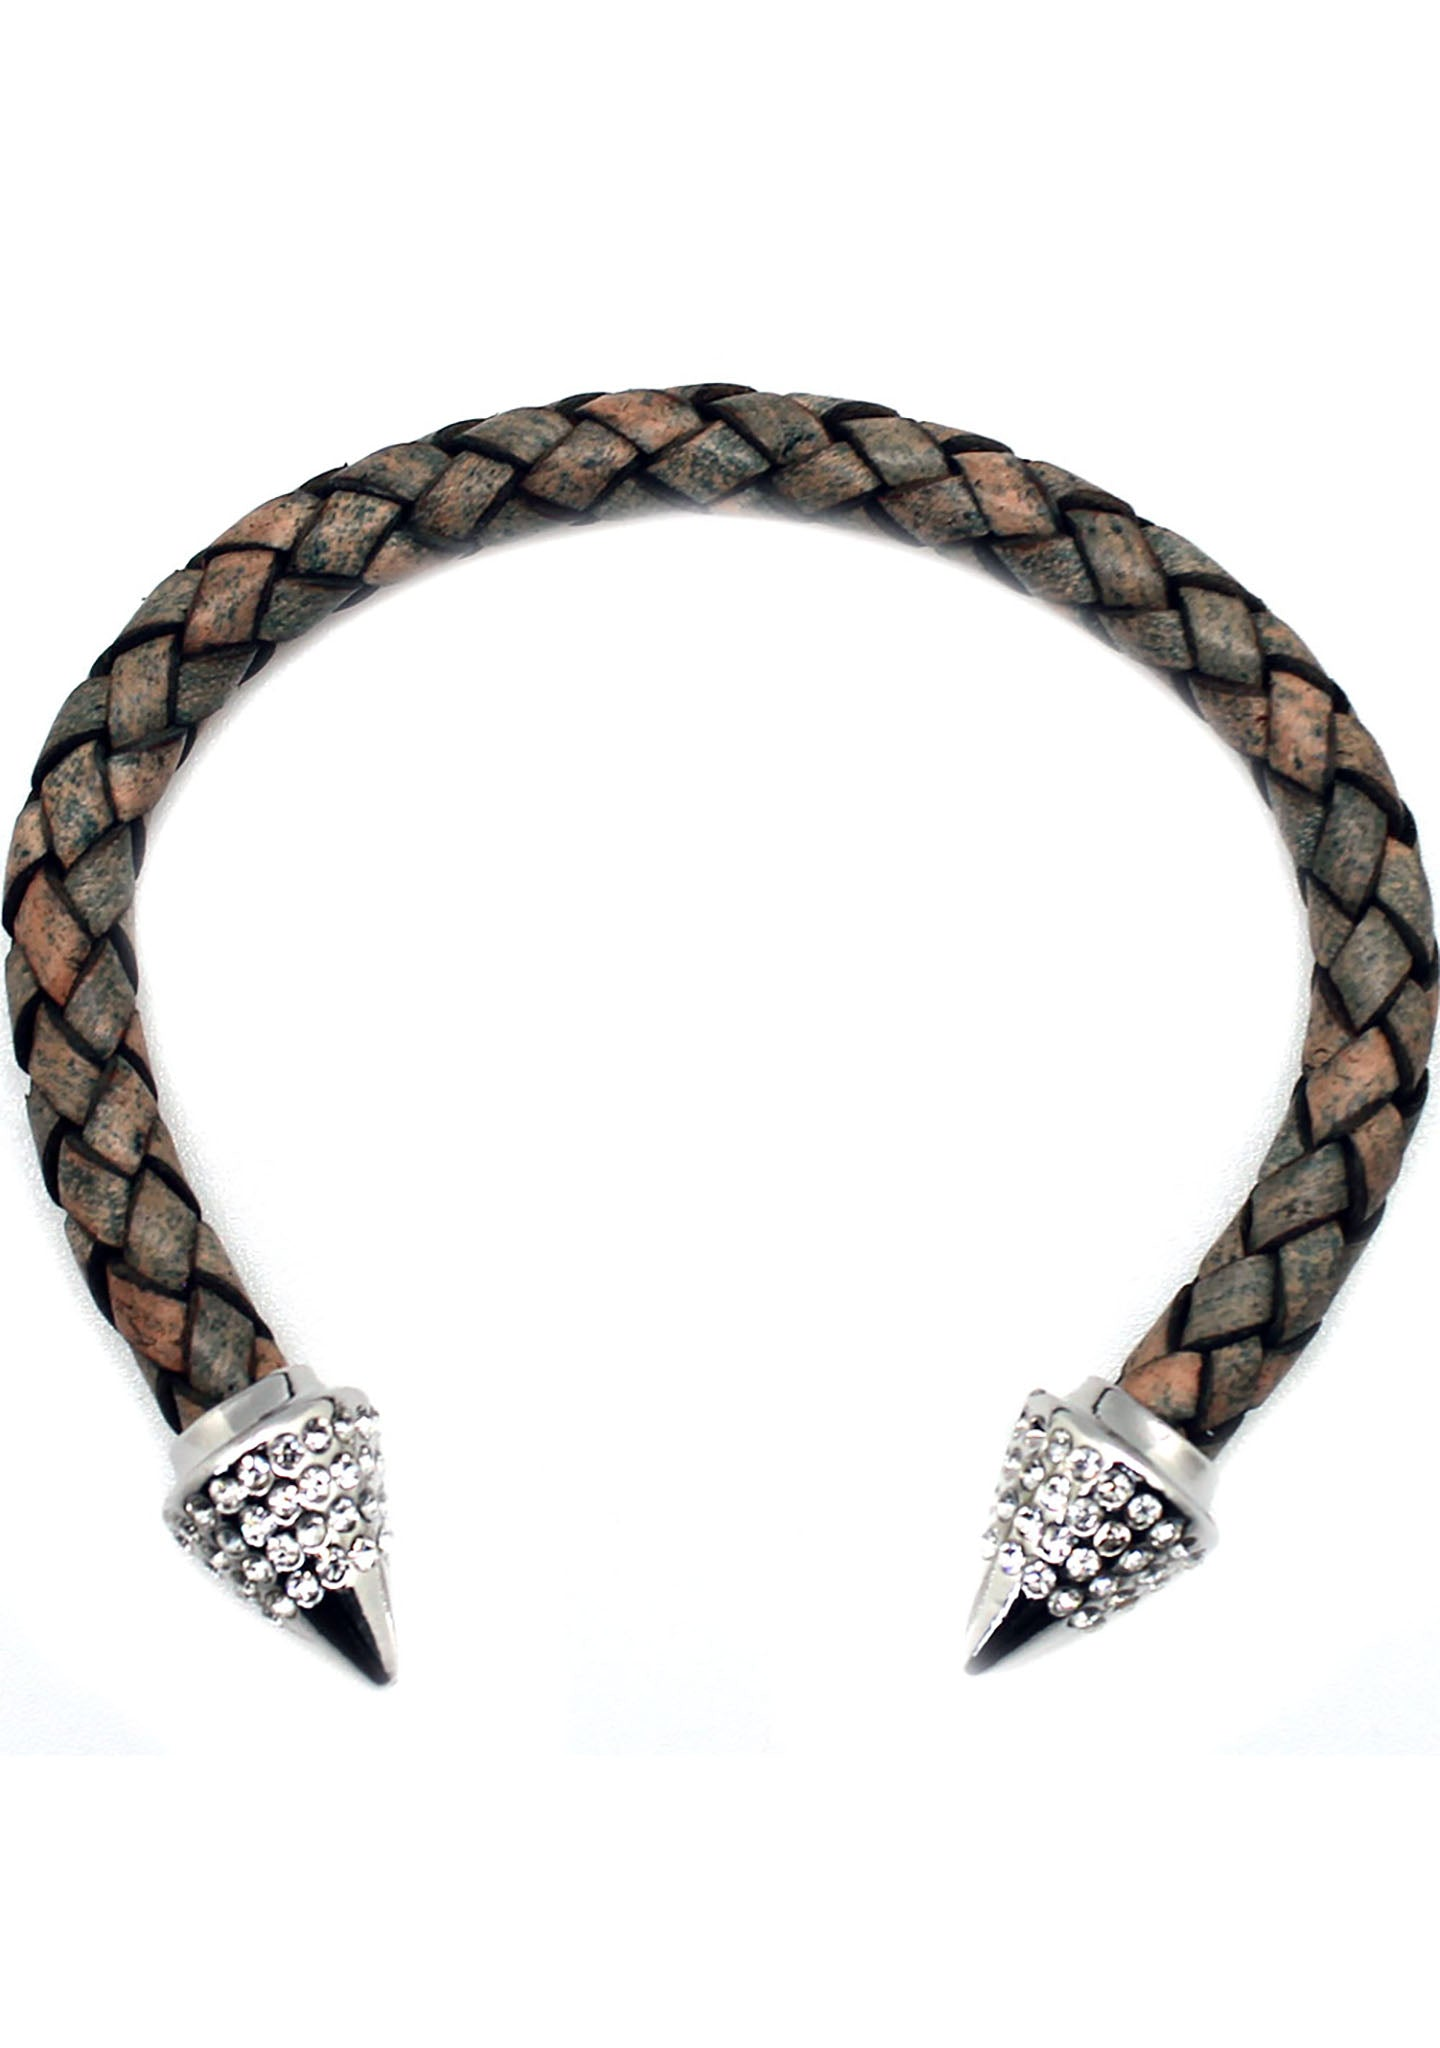 7 LUXE Anaconda Bangle Bracelet